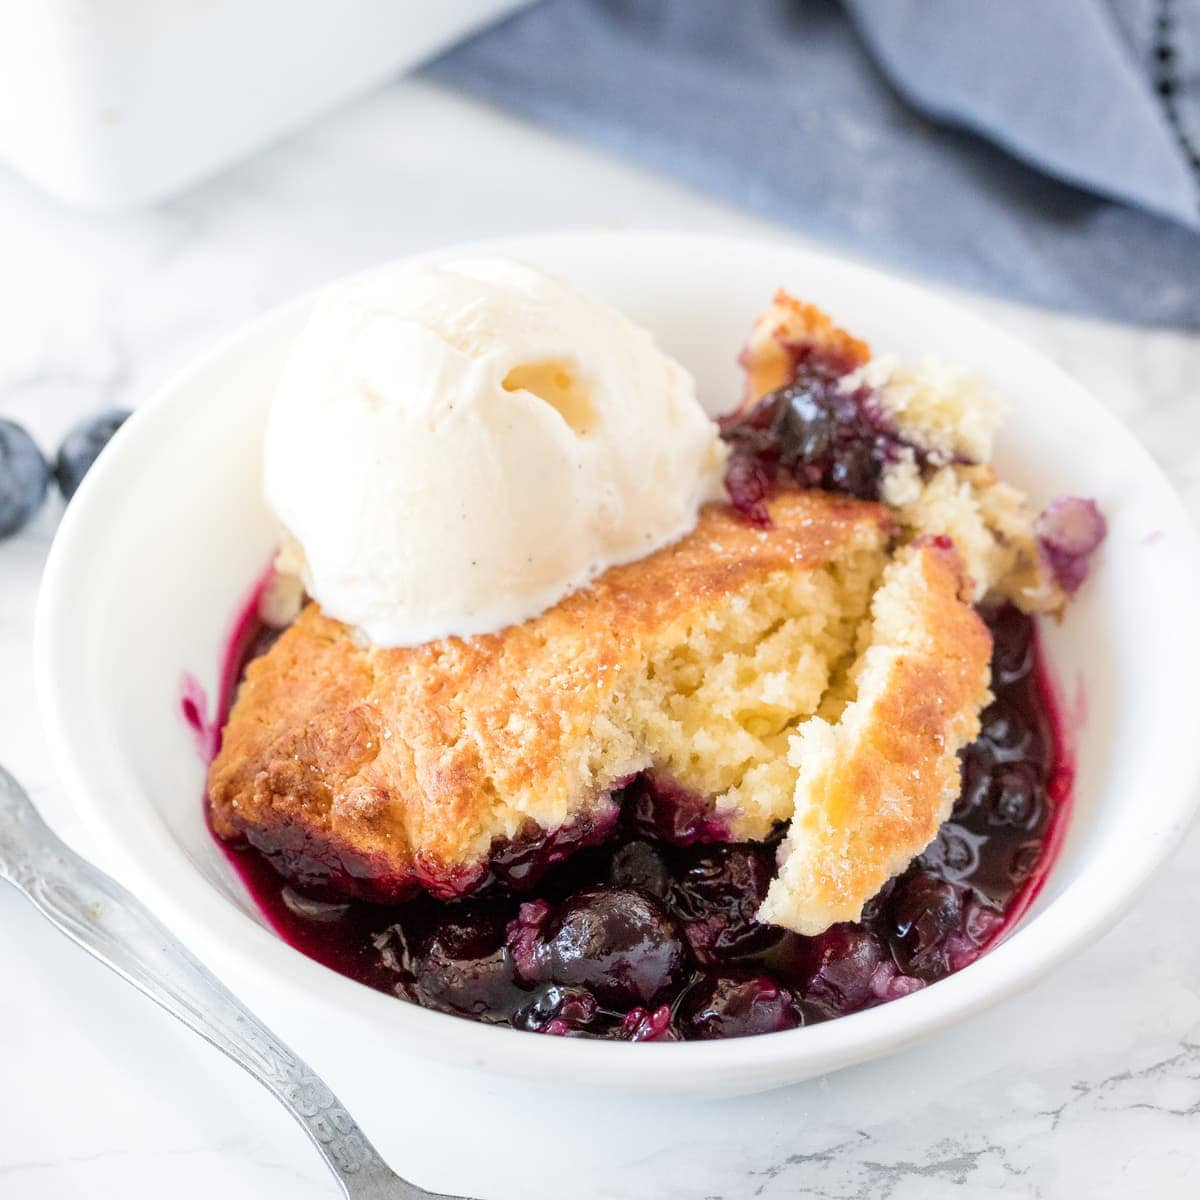 Scoop of blueberry cobbler with vanilla ice cream in a white bowl